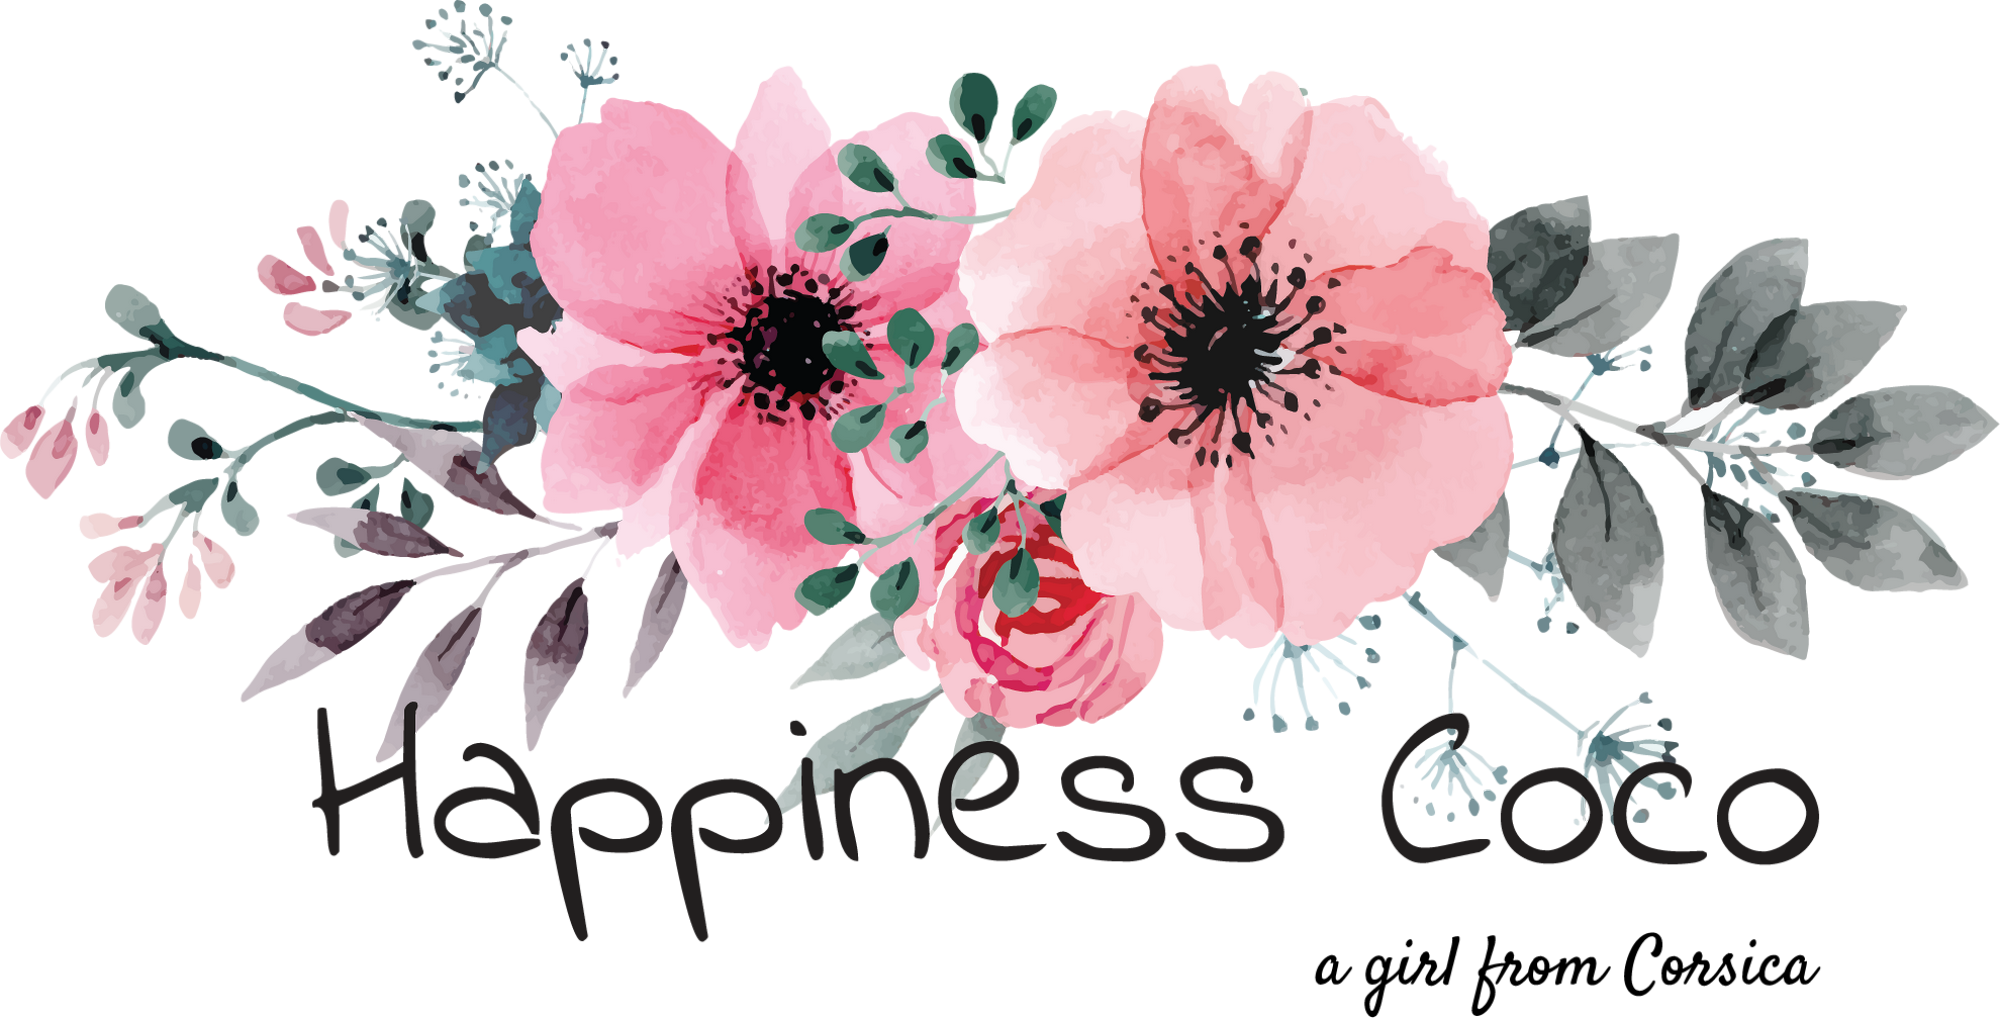 HappinessCoco - Fashion & Beauty Blog from Corsica